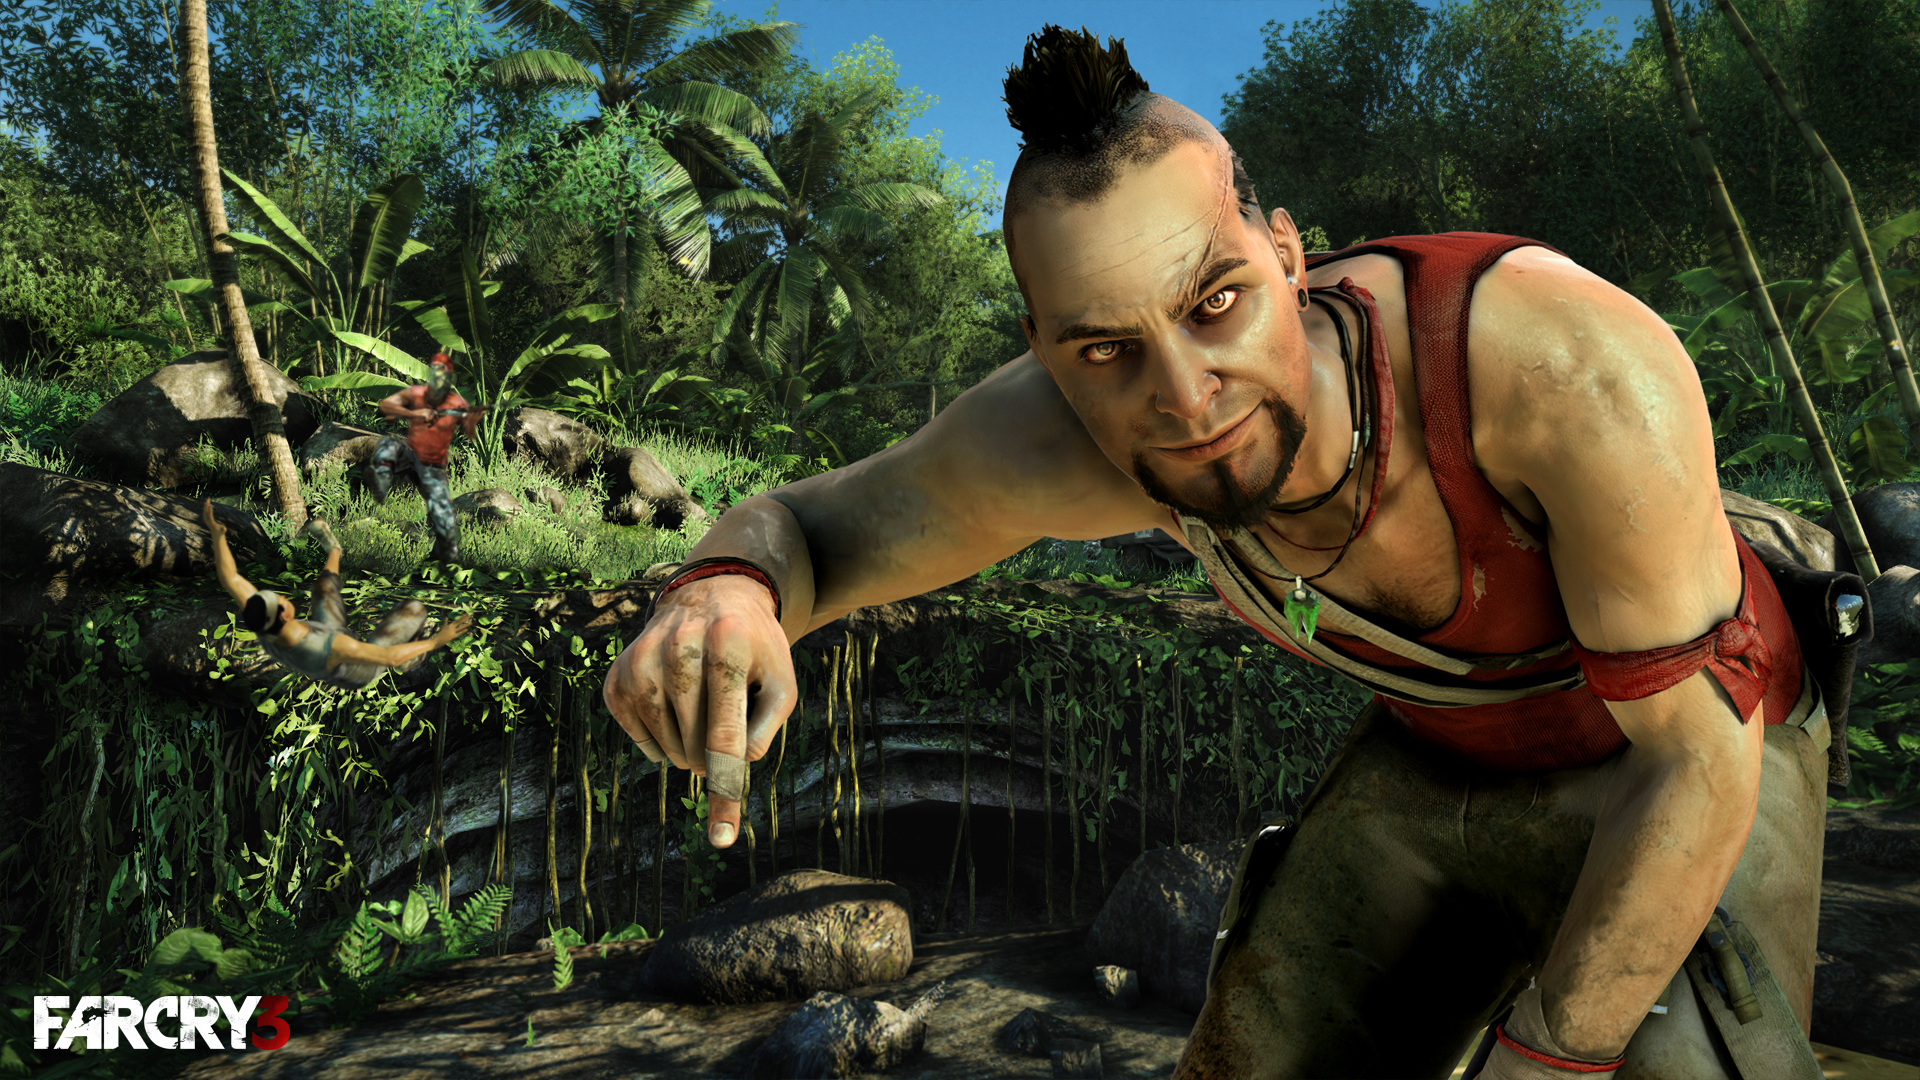 Far Cry Compilation Coming To Playstation 3